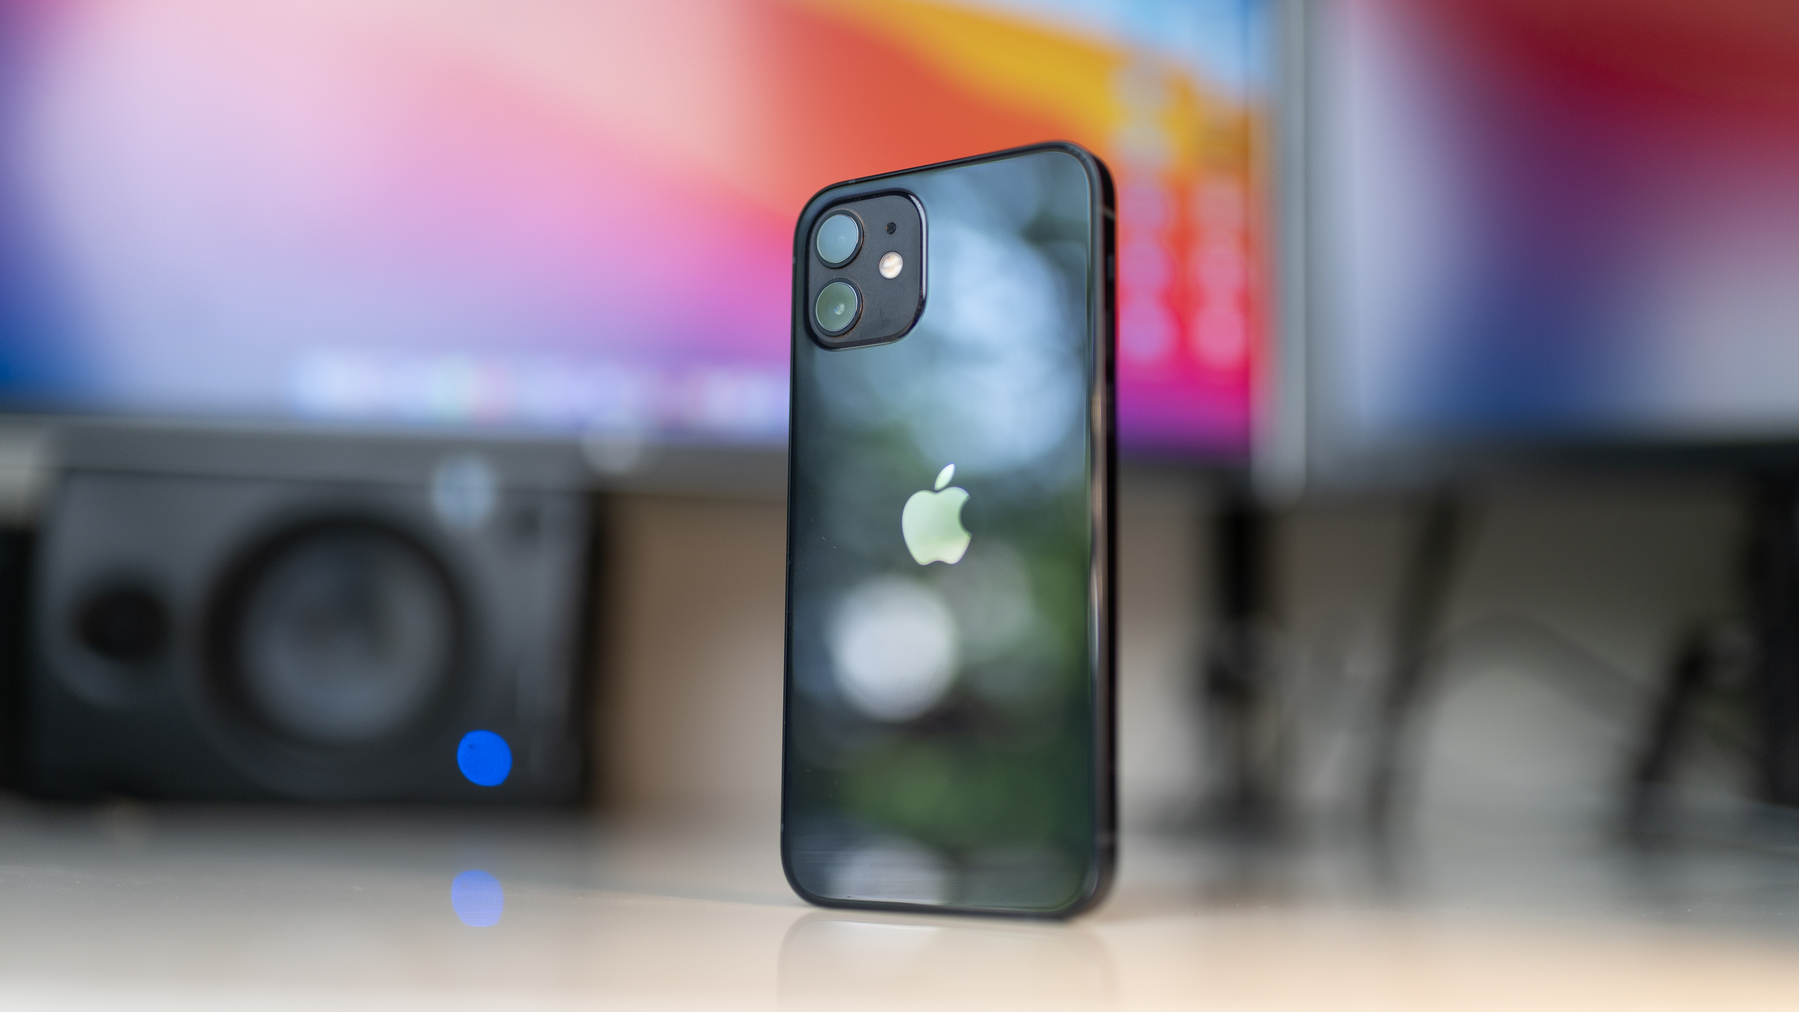 iPhone 12 Black - Rear